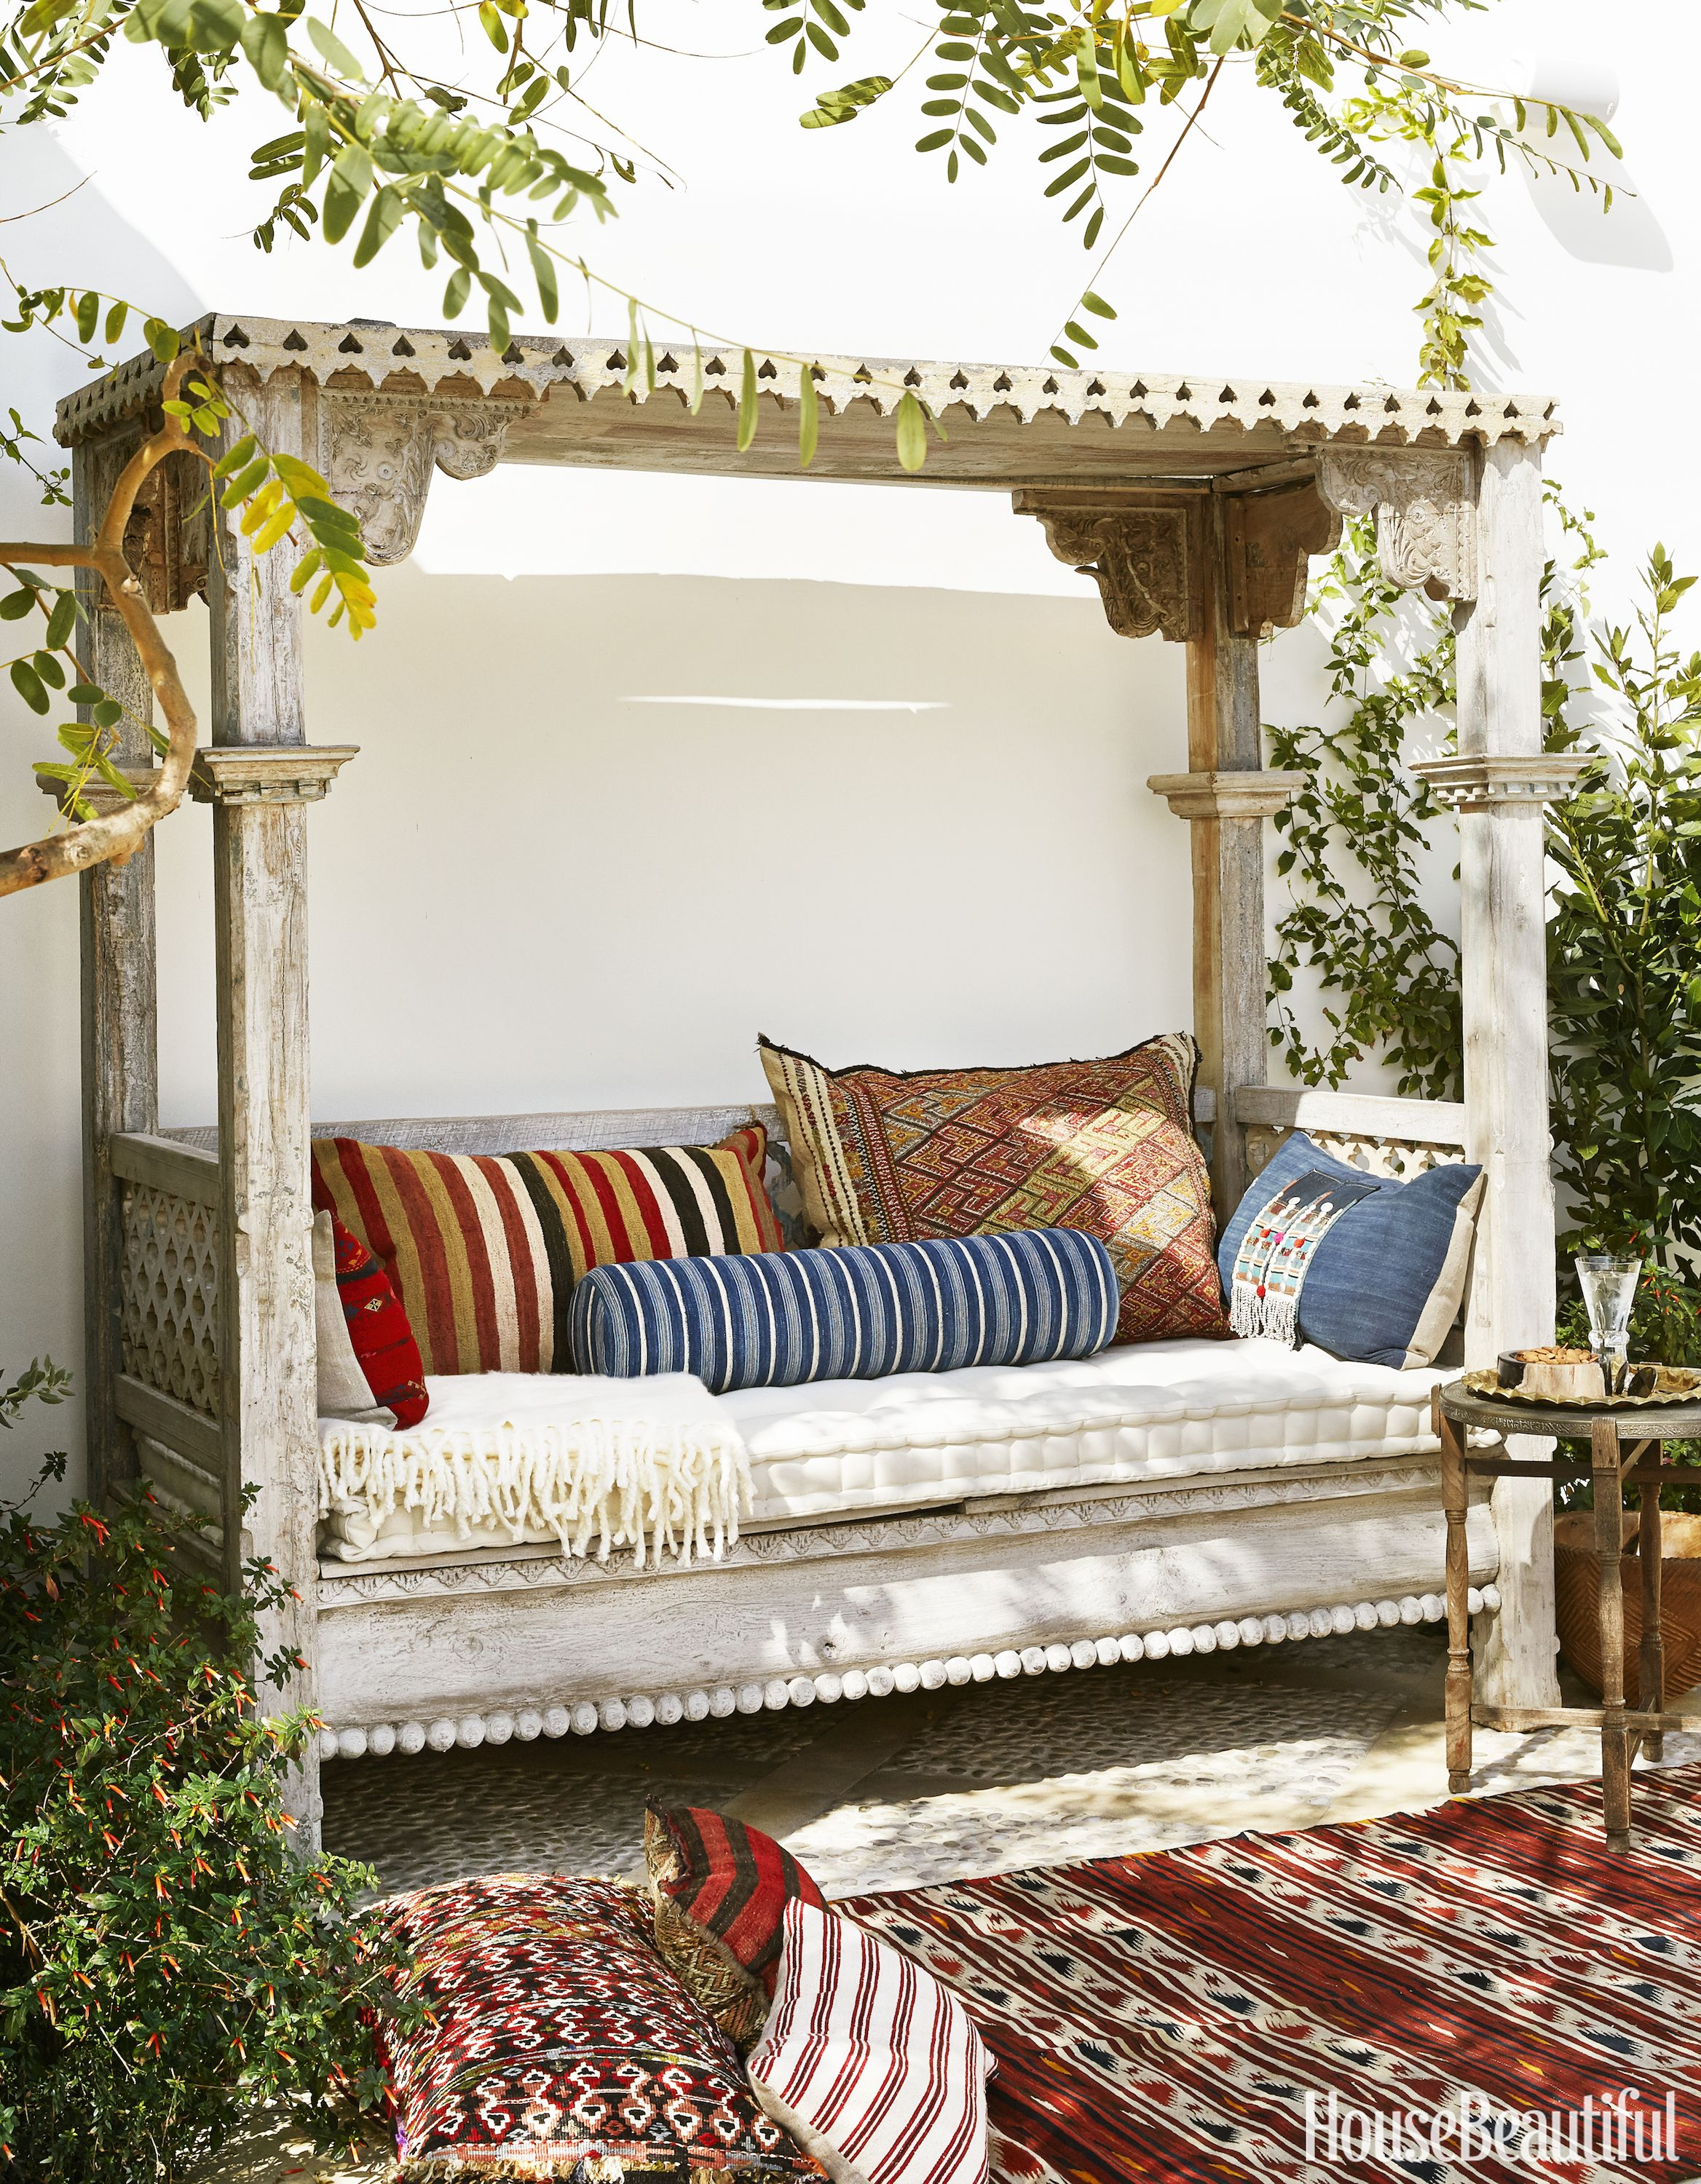 35 Backyard Design Ideas - Beautiful Yard Inspiration Pictures on Belham Living Lilianna Outdoor Daybed id=83549